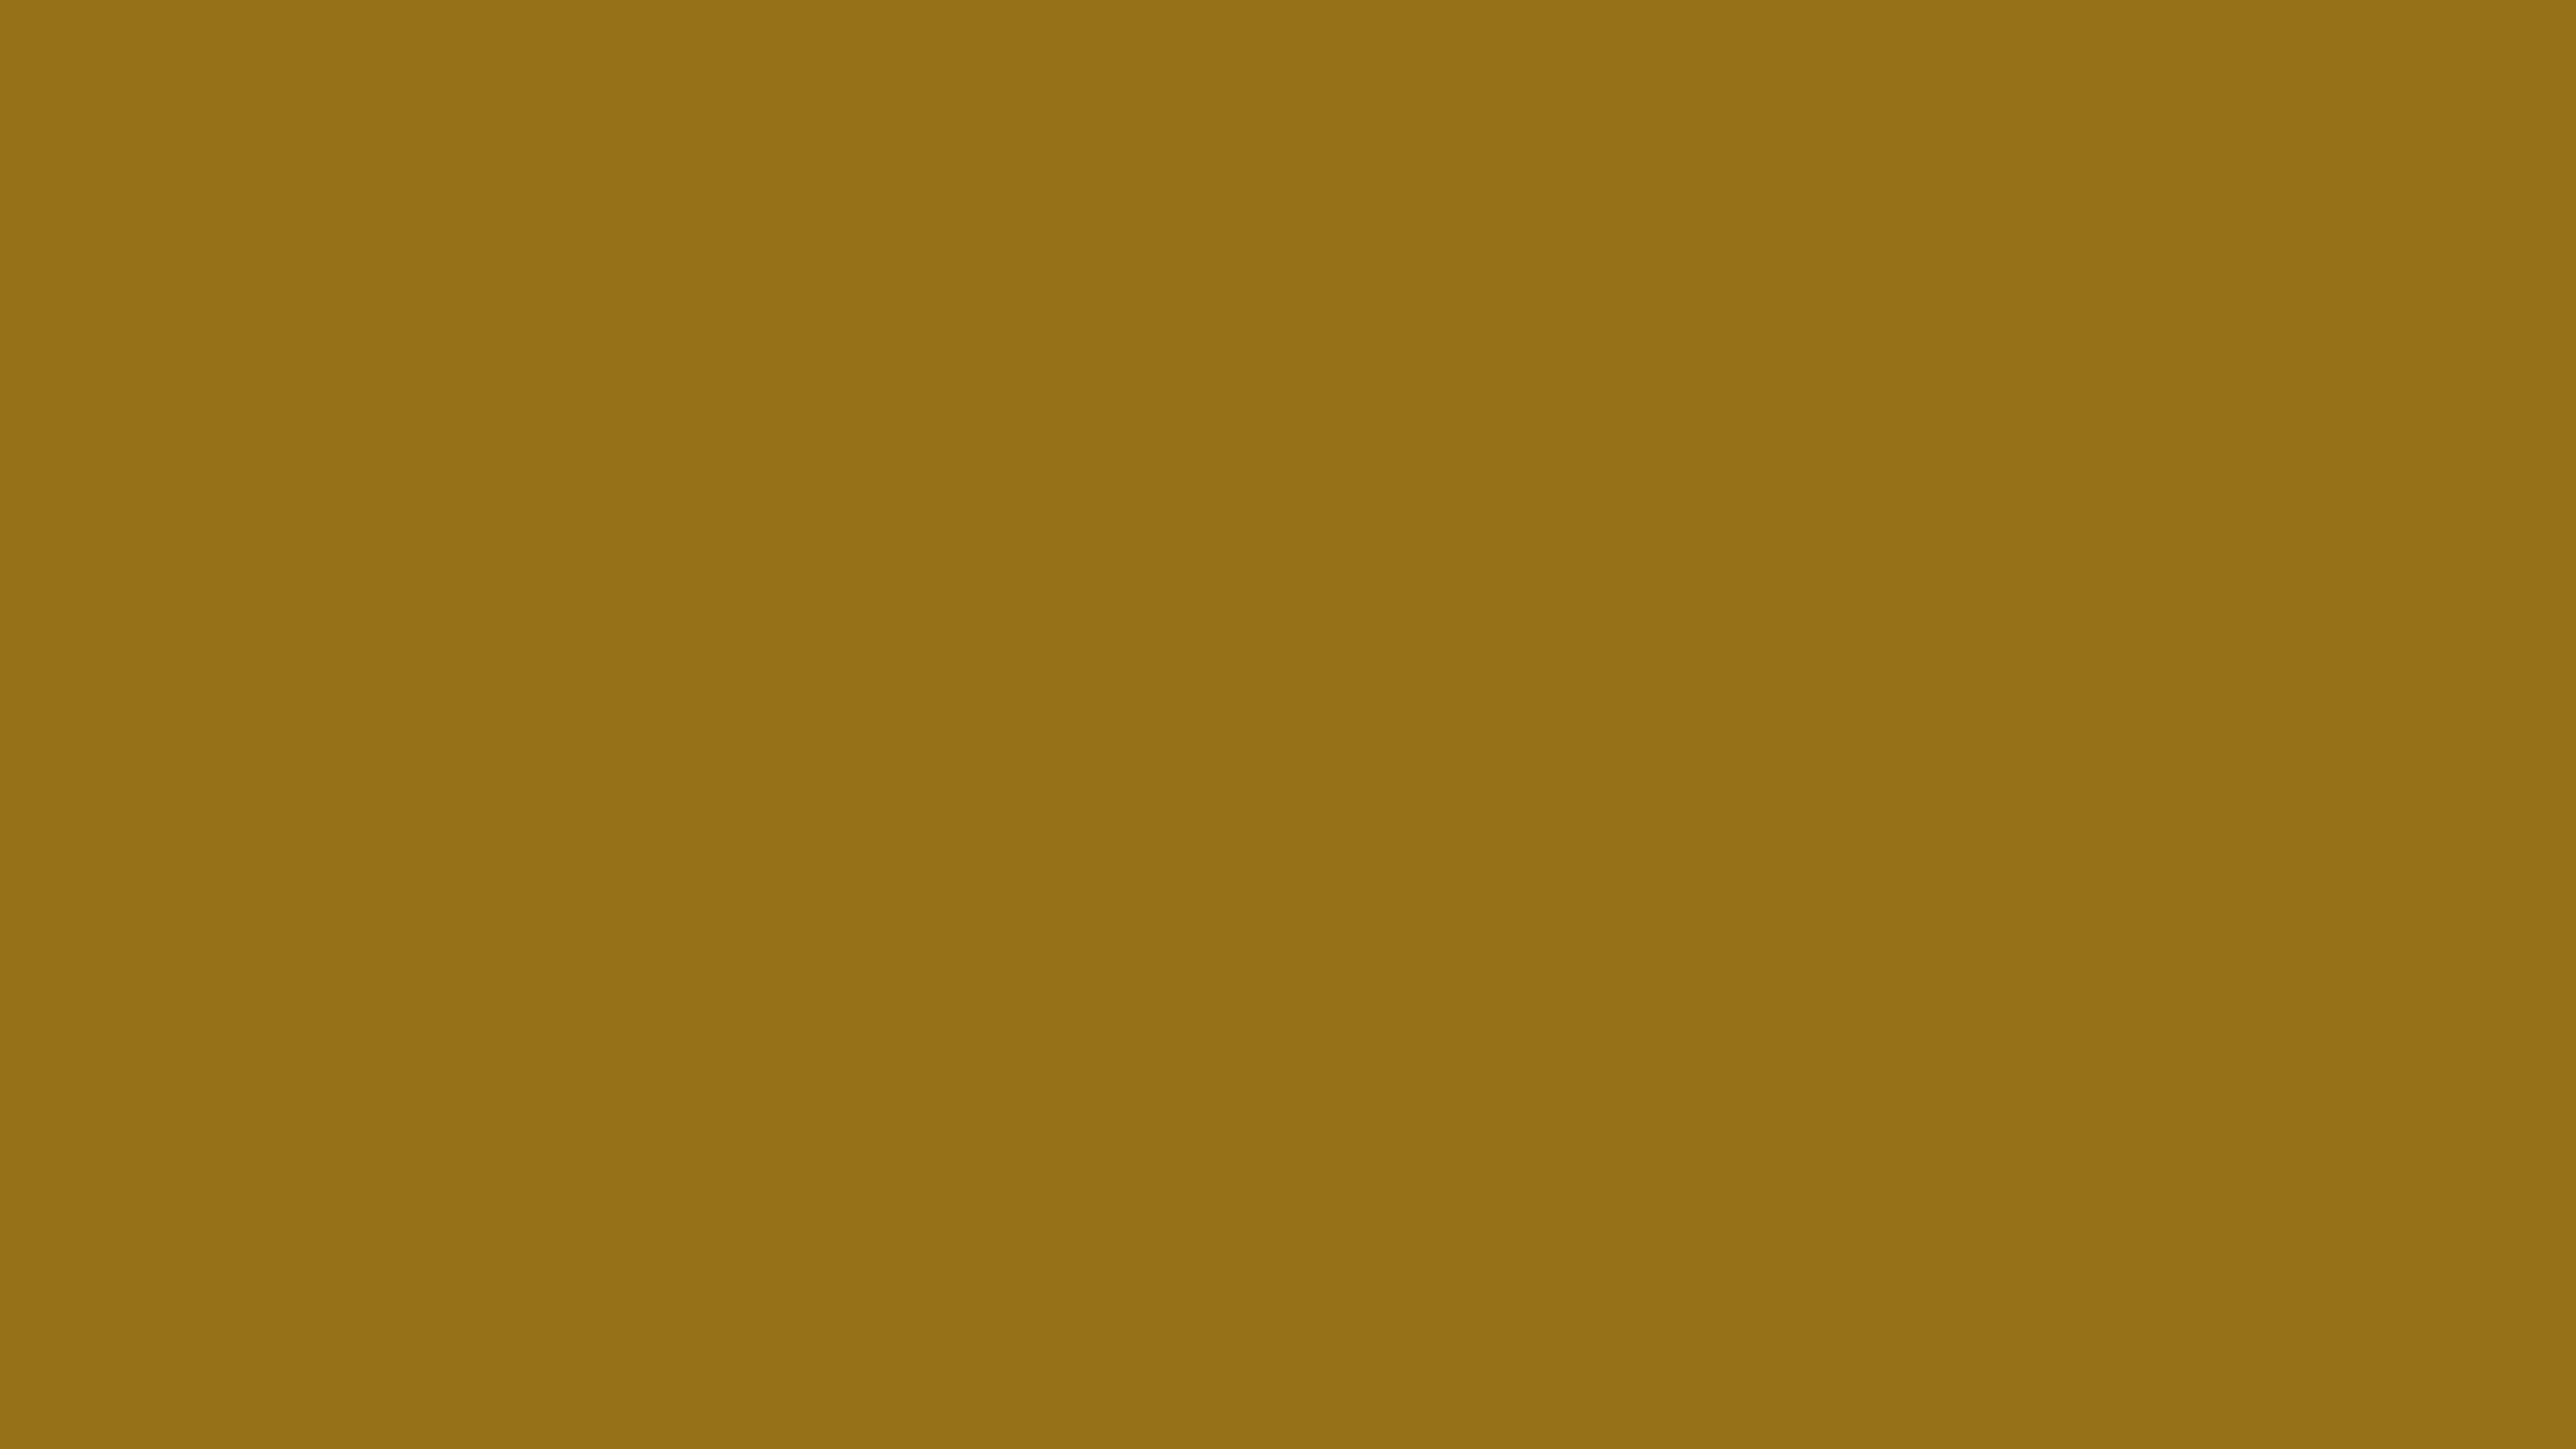 7680x4320 Sandy Taupe Solid Color Background